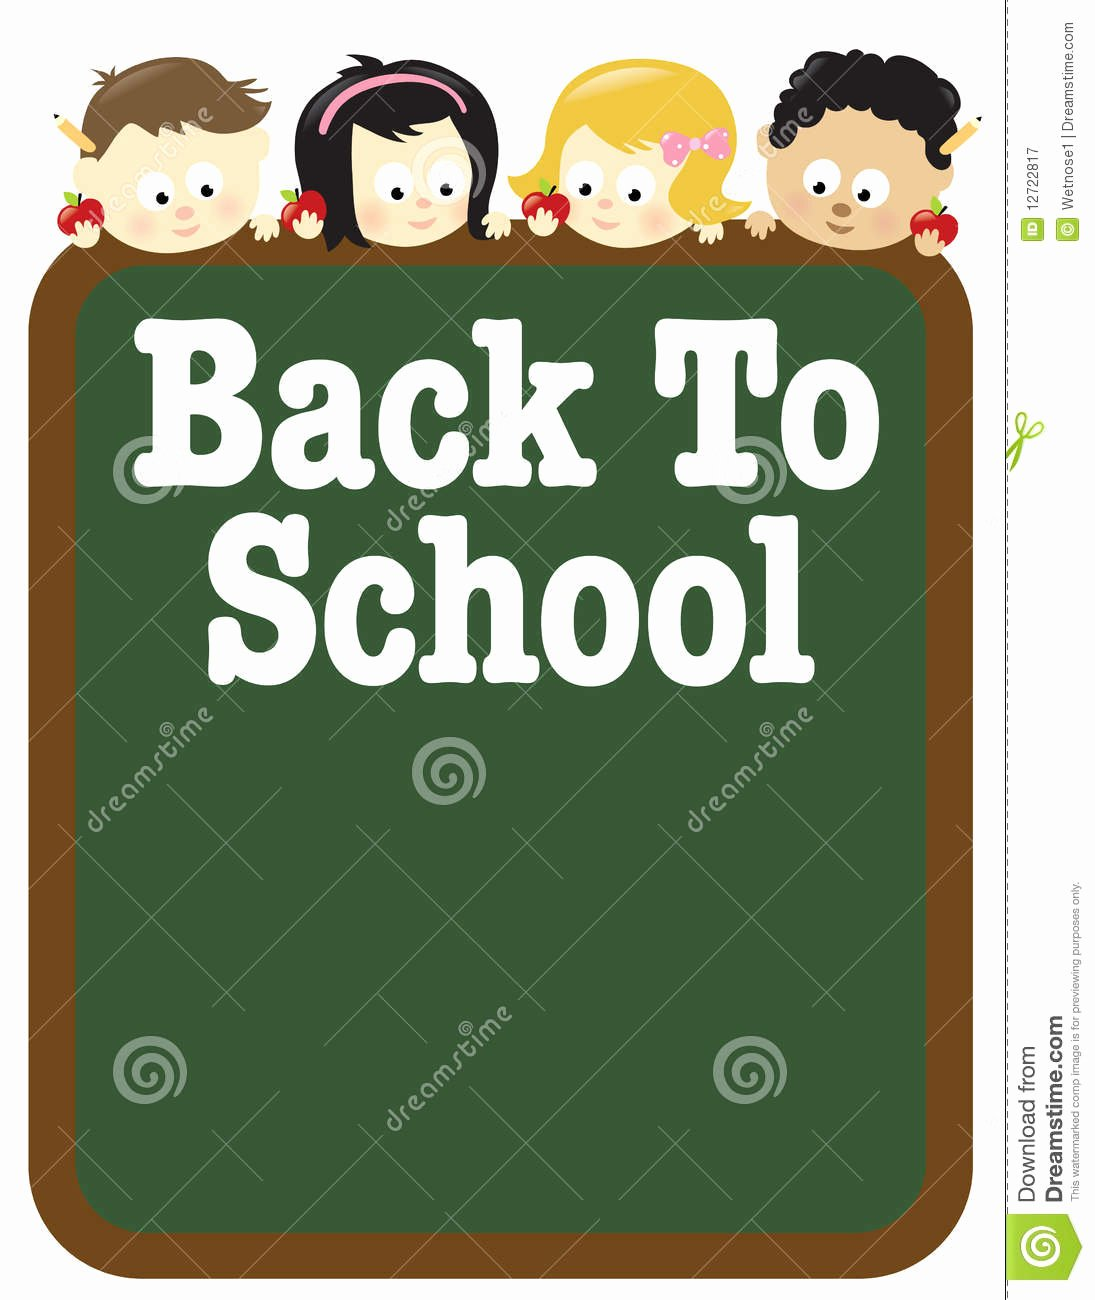 School Flyer Template Free Awesome 8 5x11 Back to School Flyer Template Stock Vector